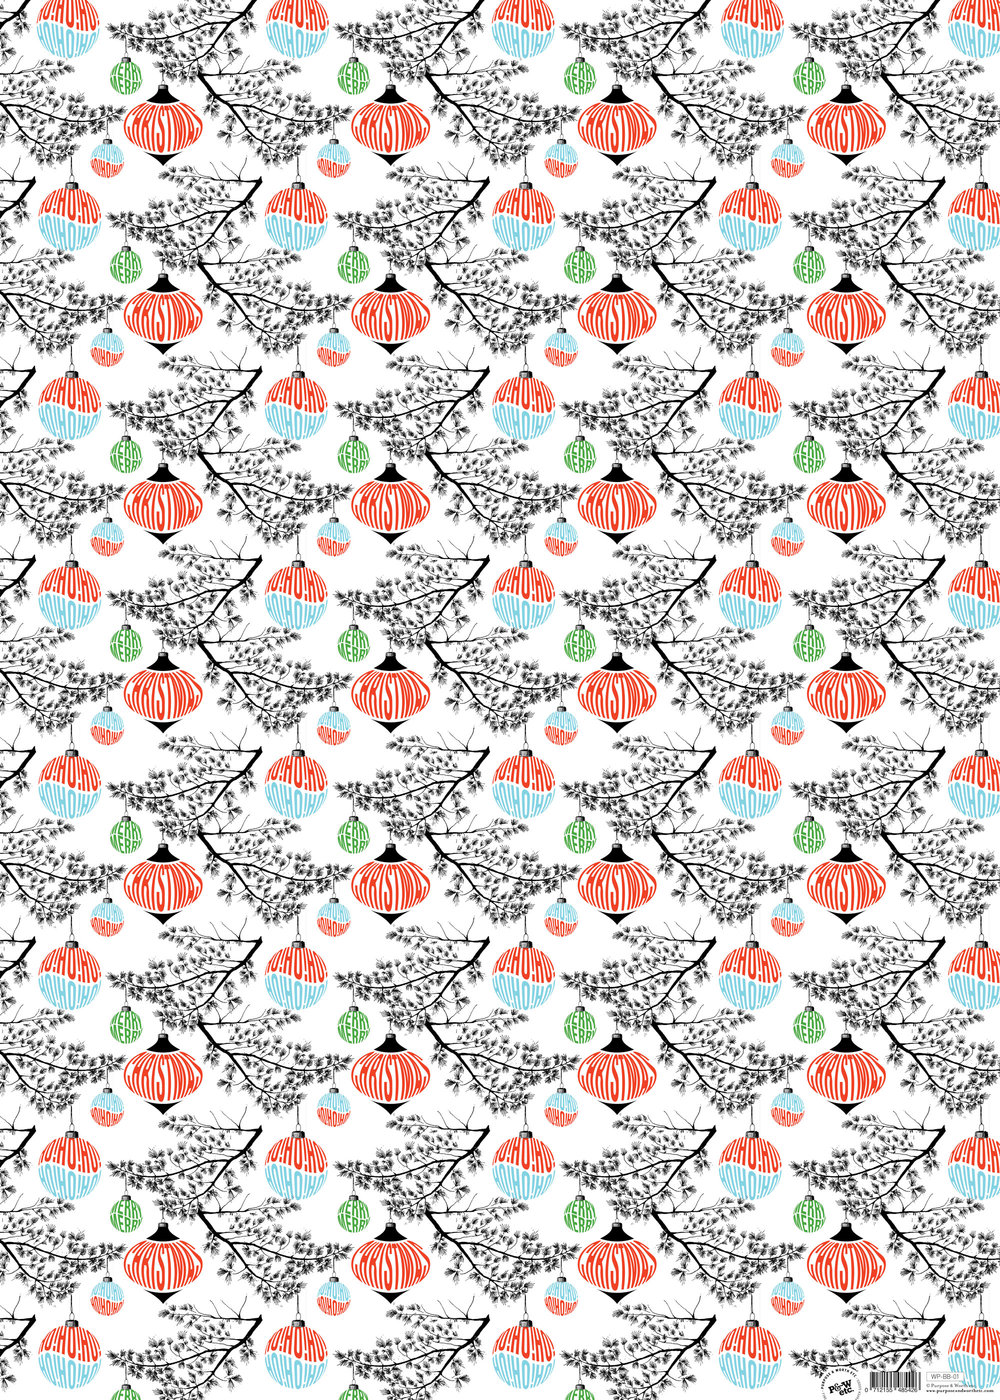 Baubles & Boughs wrapping paper: WP_BB_01, matching cards available